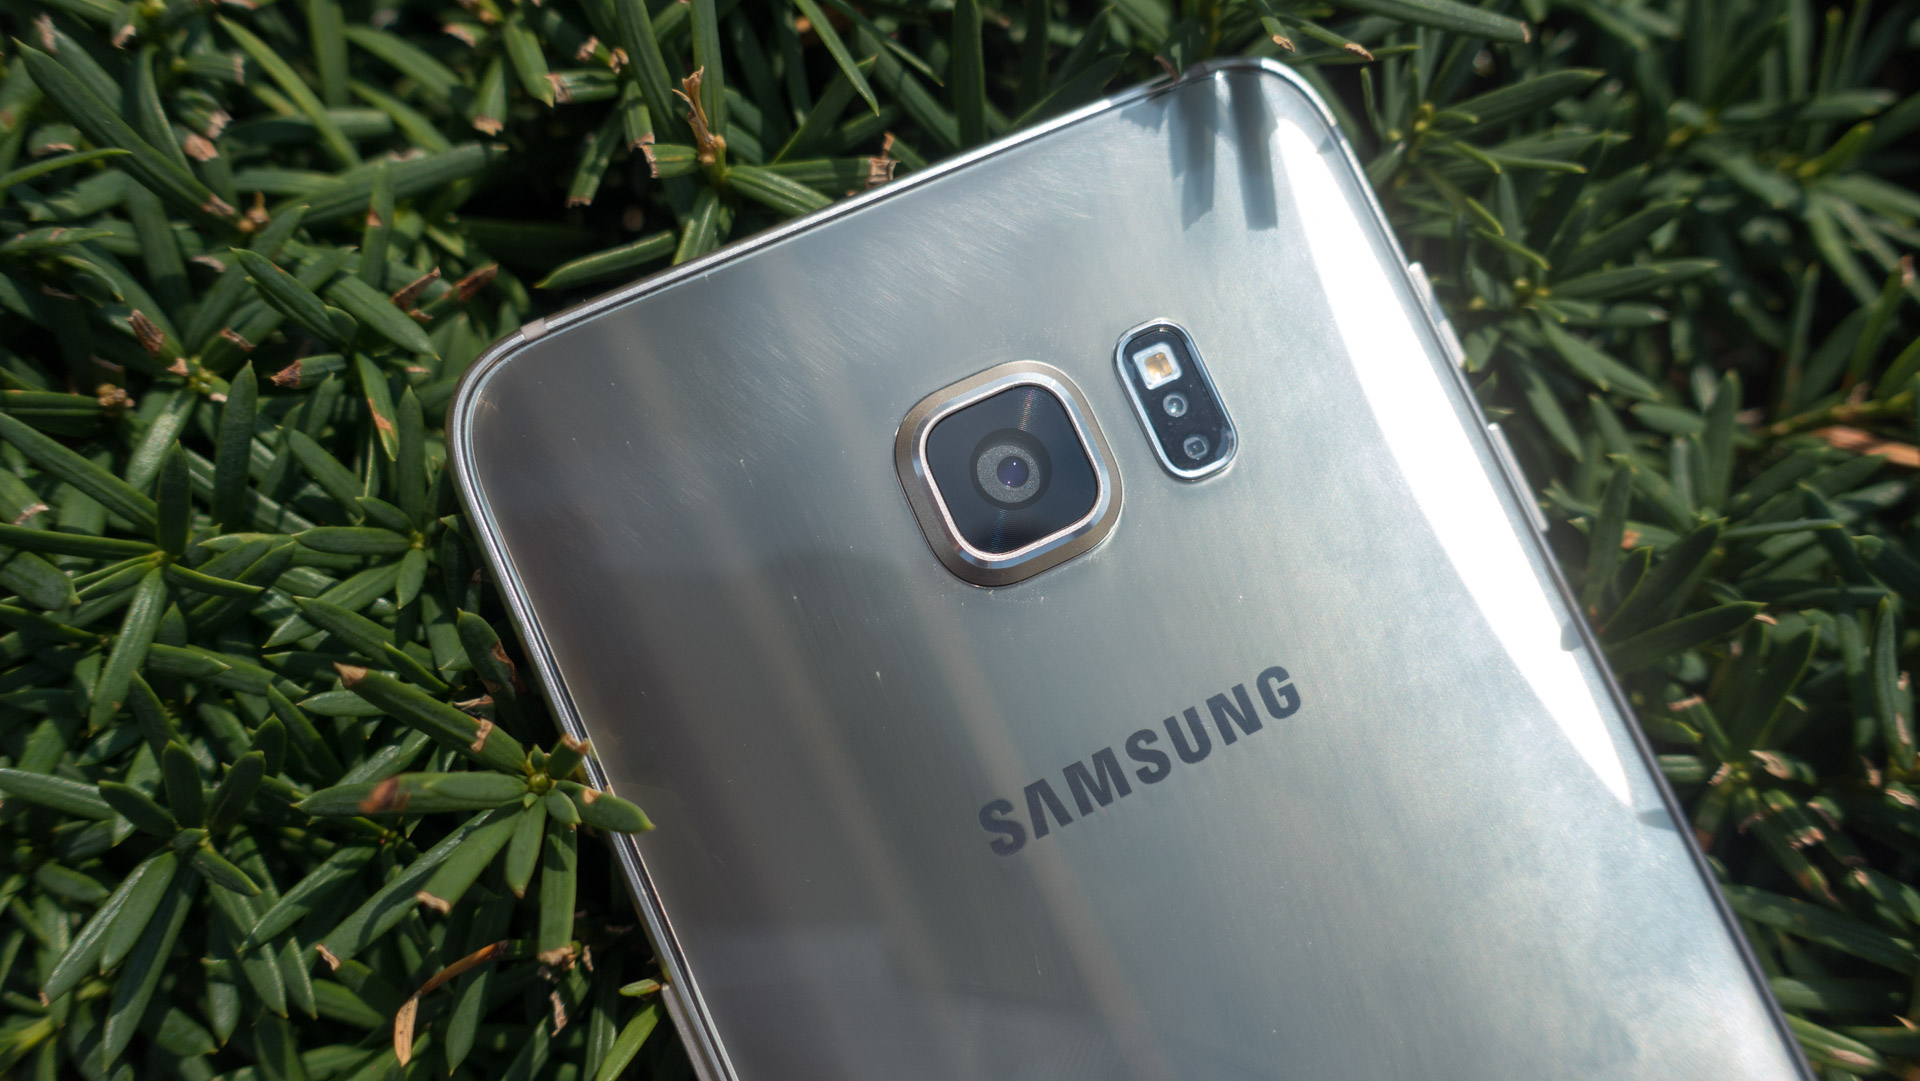 Samsung-Galaxy-S6-Edge-plus-Camera-Tips-Tricks-AH-6